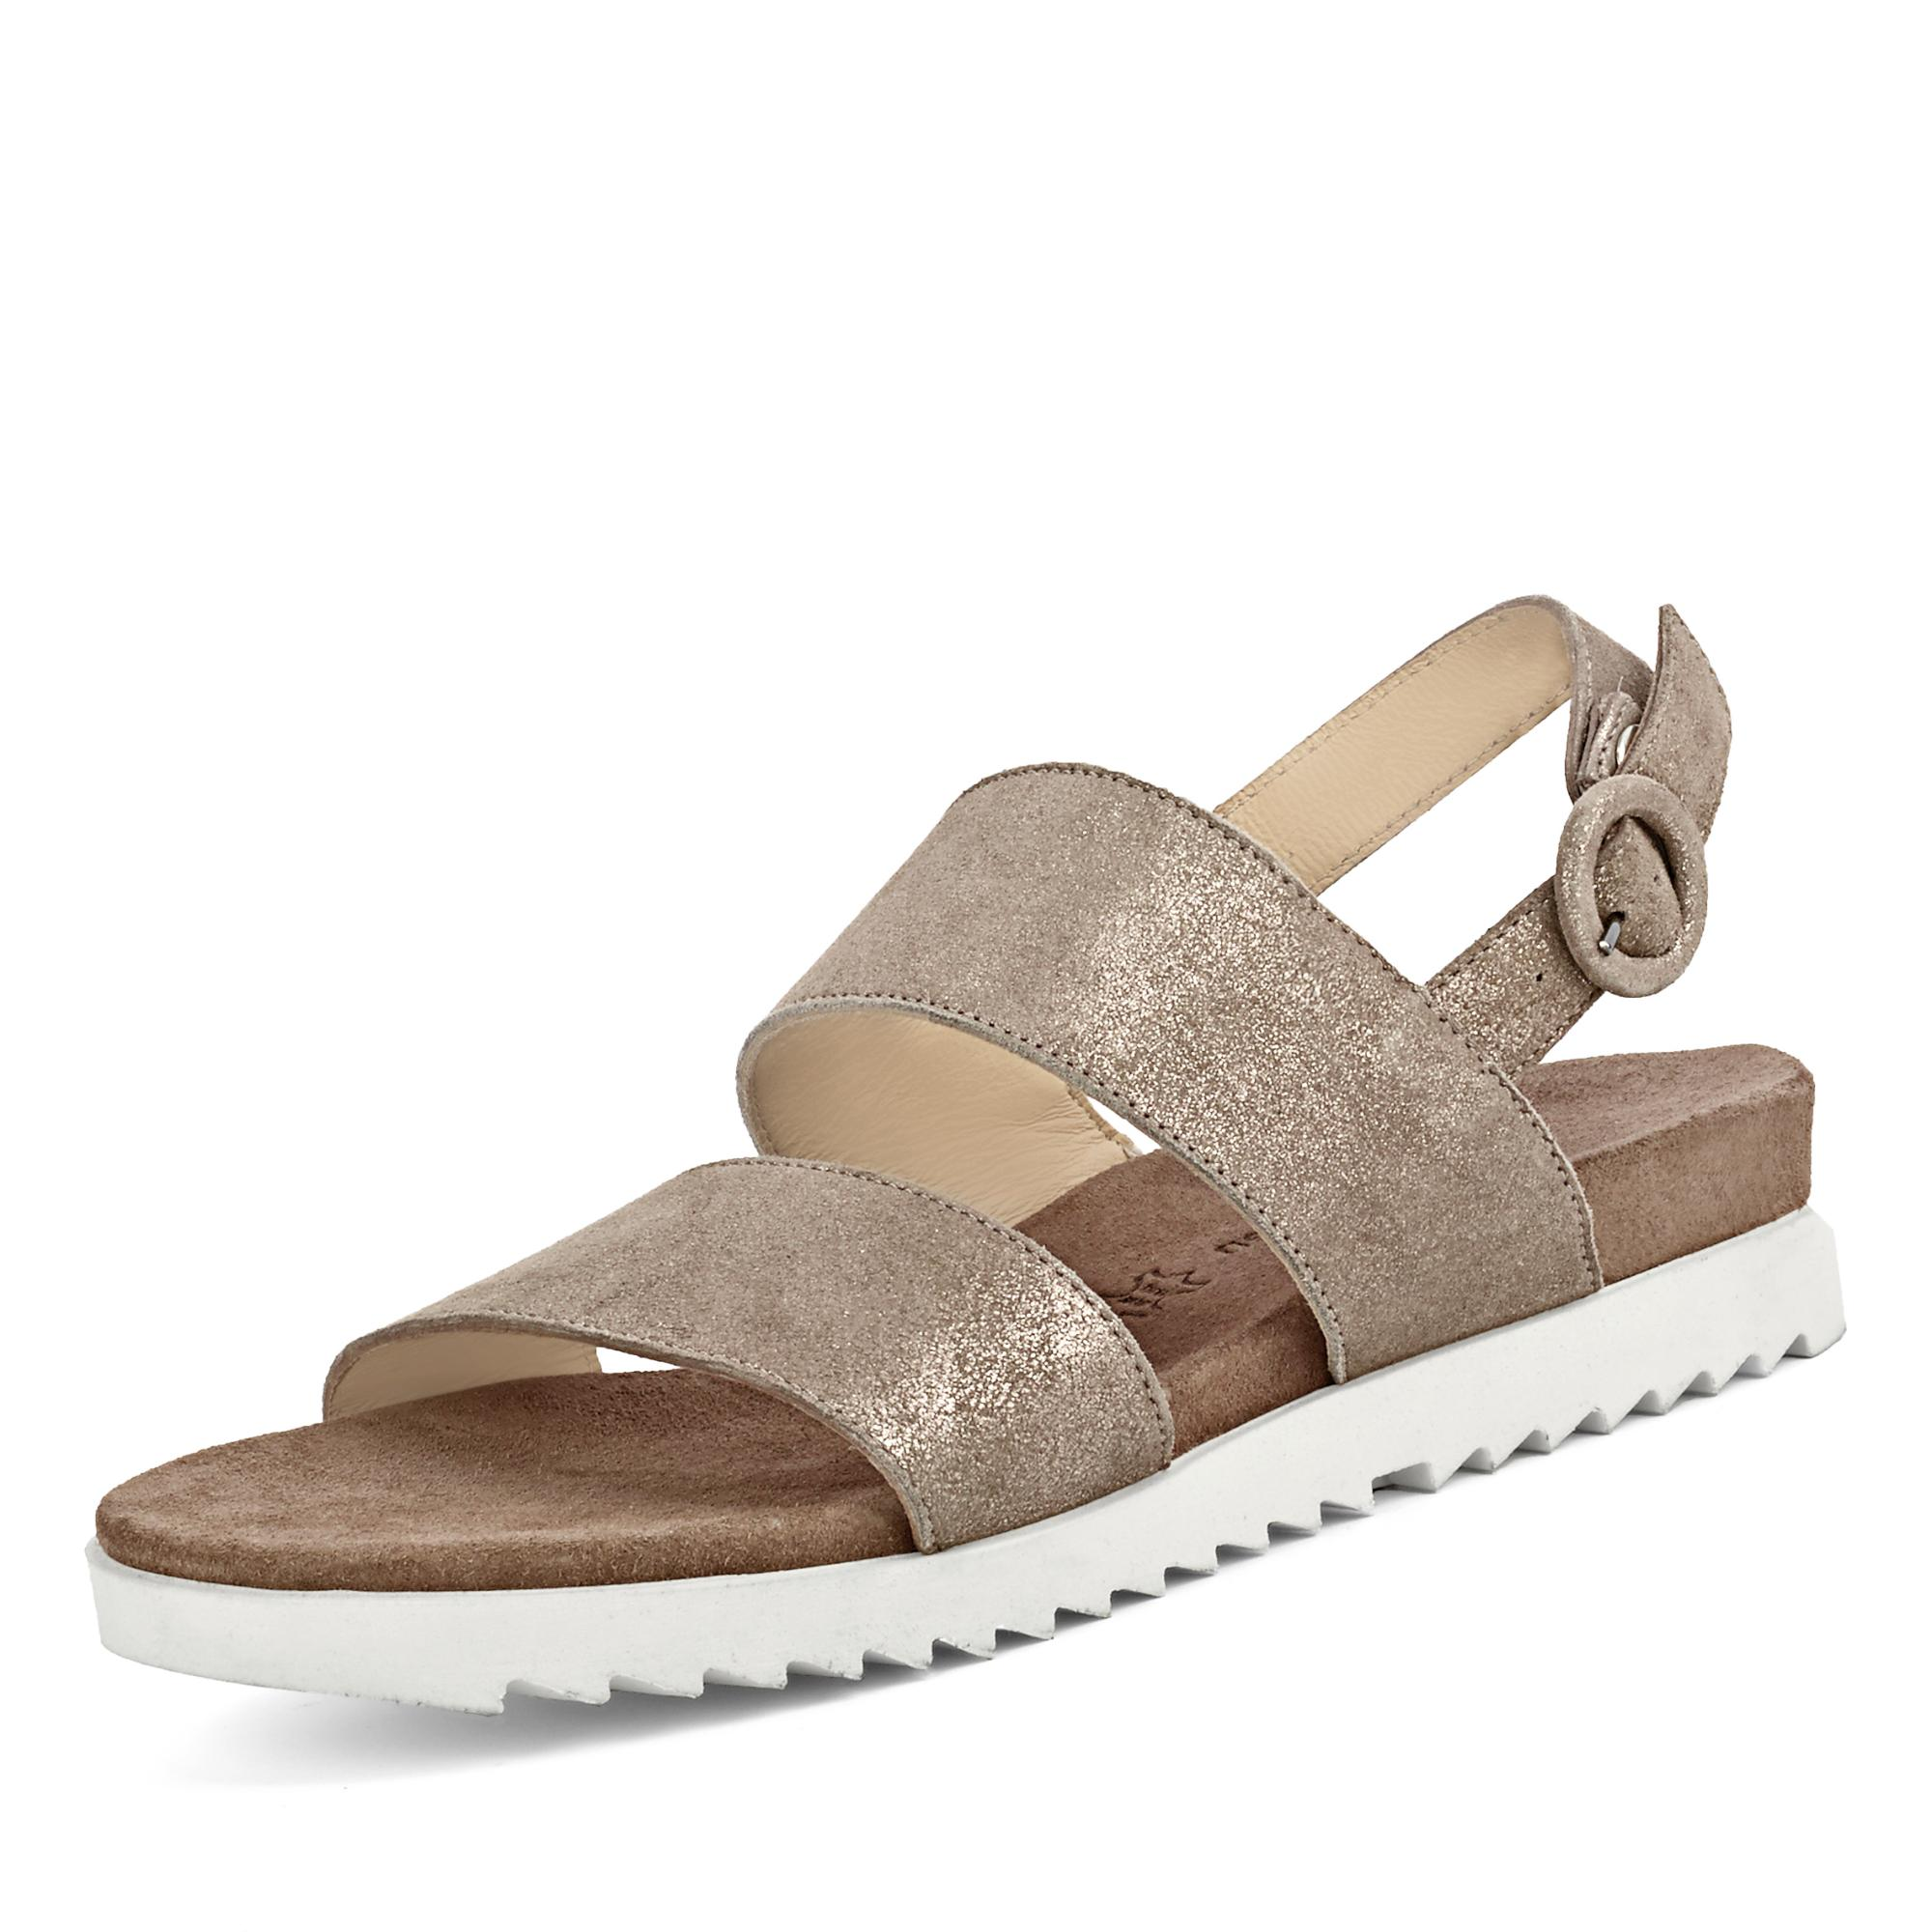 Paul Green Sandale - beige metallic | Markenschuhe